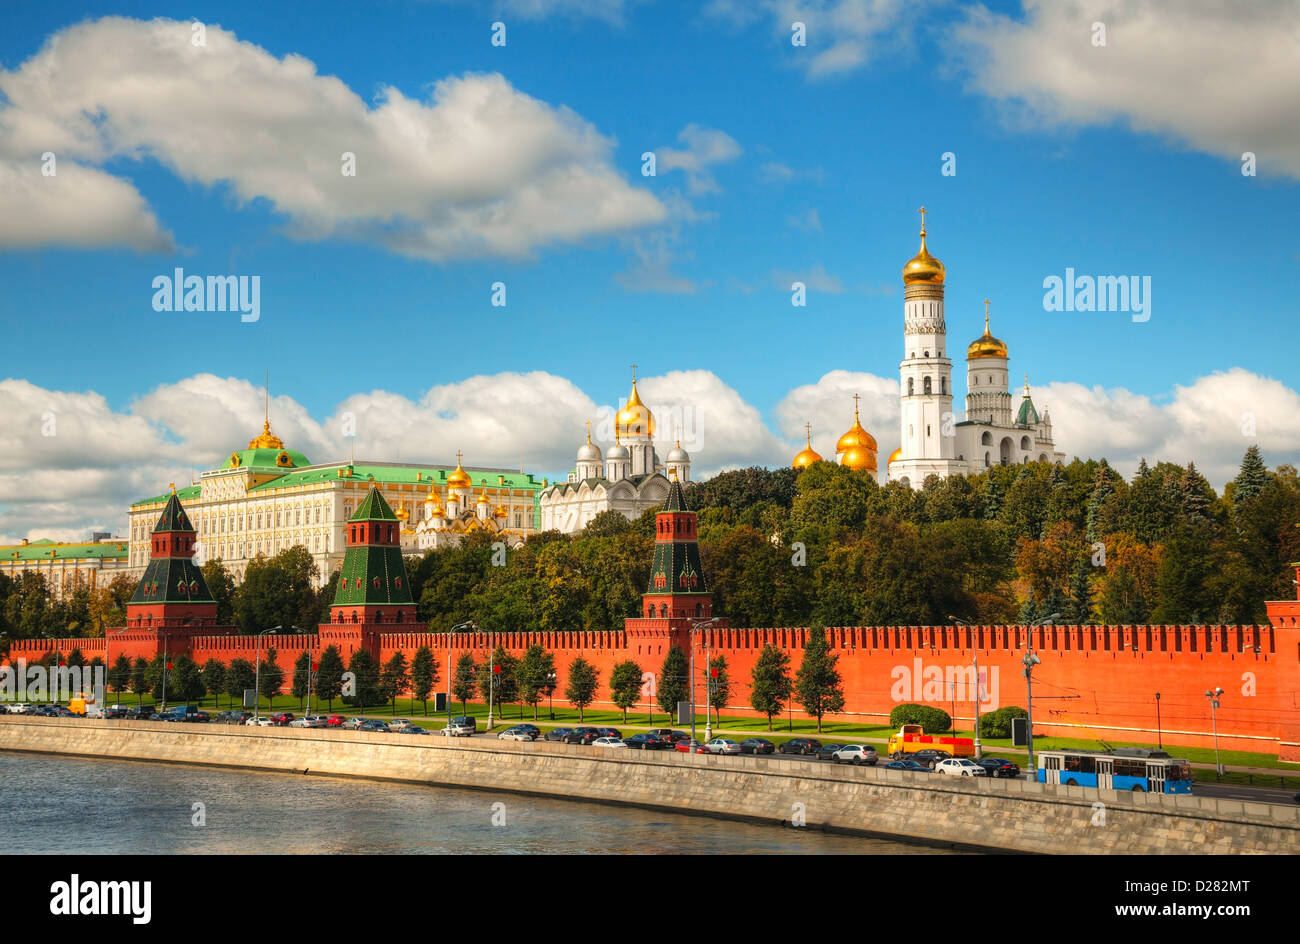 Overview of Kremlin in Moscow on a sunny day - Stock Image